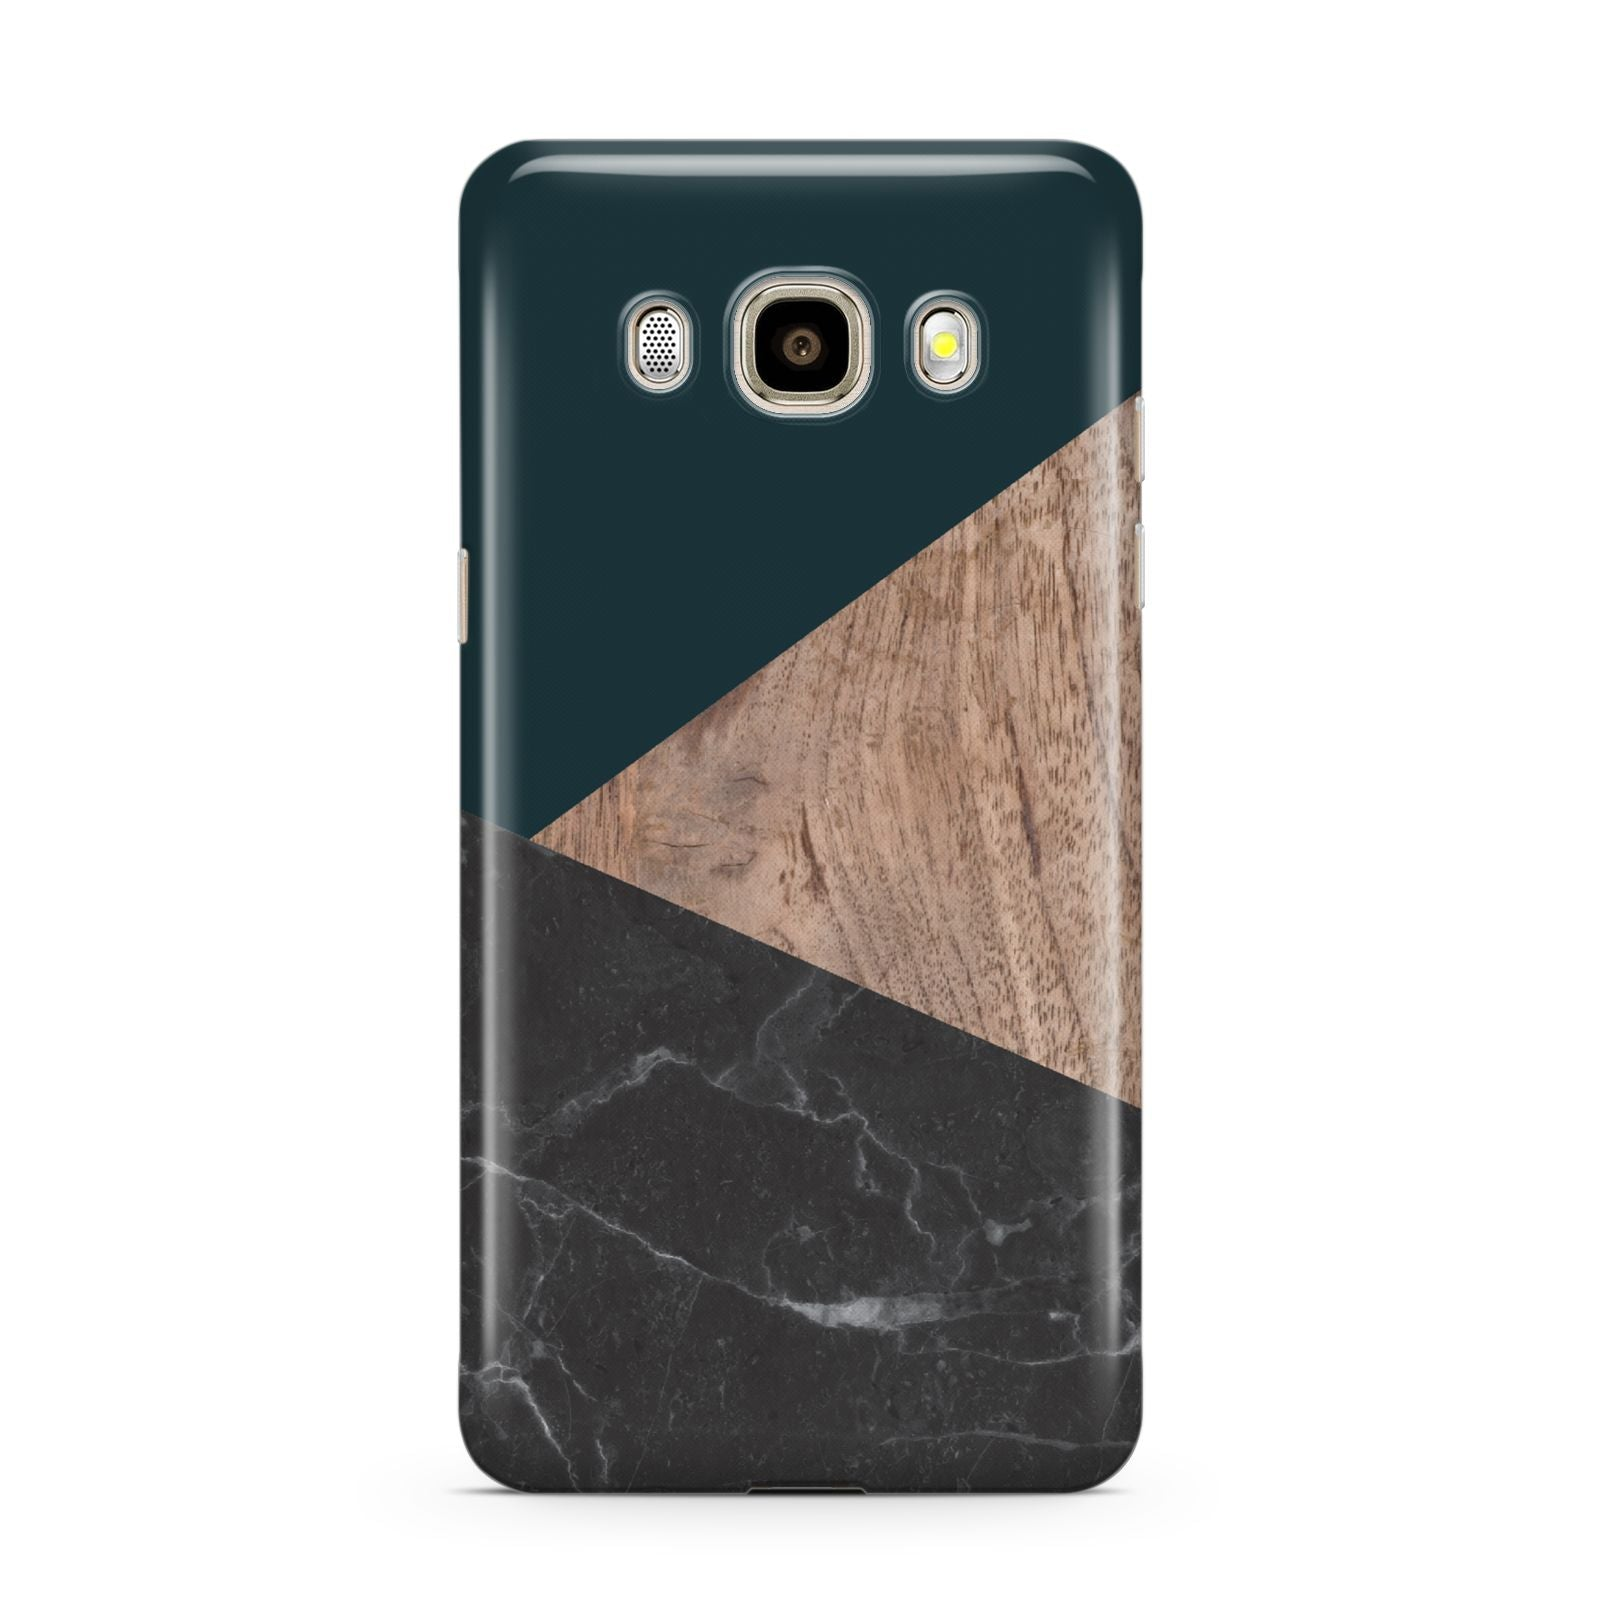 Marble Wood Geometric 6 Samsung Galaxy J7 2016 Case on gold phone